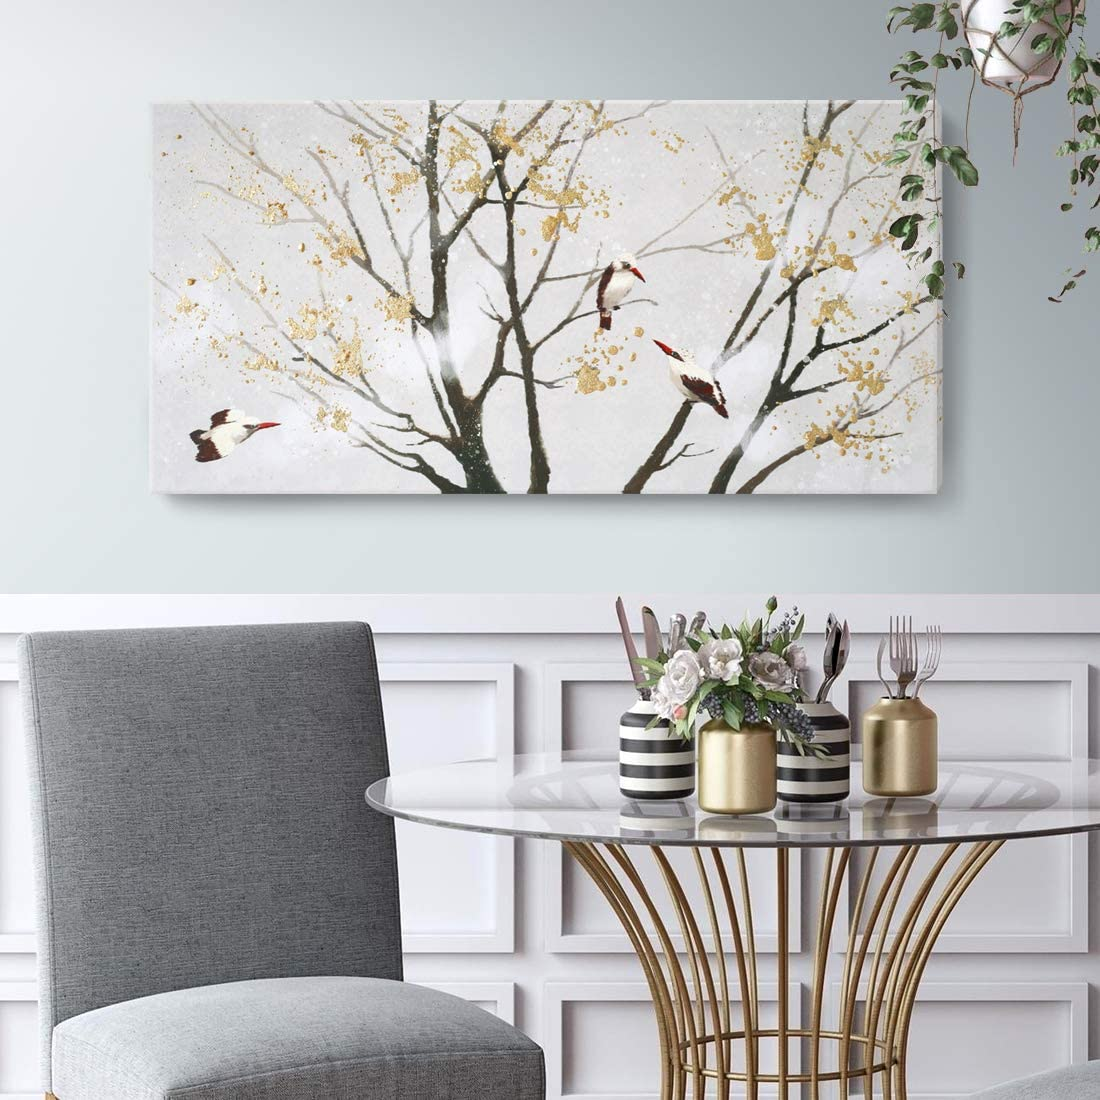 birds on a tree art abstract decor bedroom decor early spring art living room decor kitchen wall art prints. Gray abstract painting